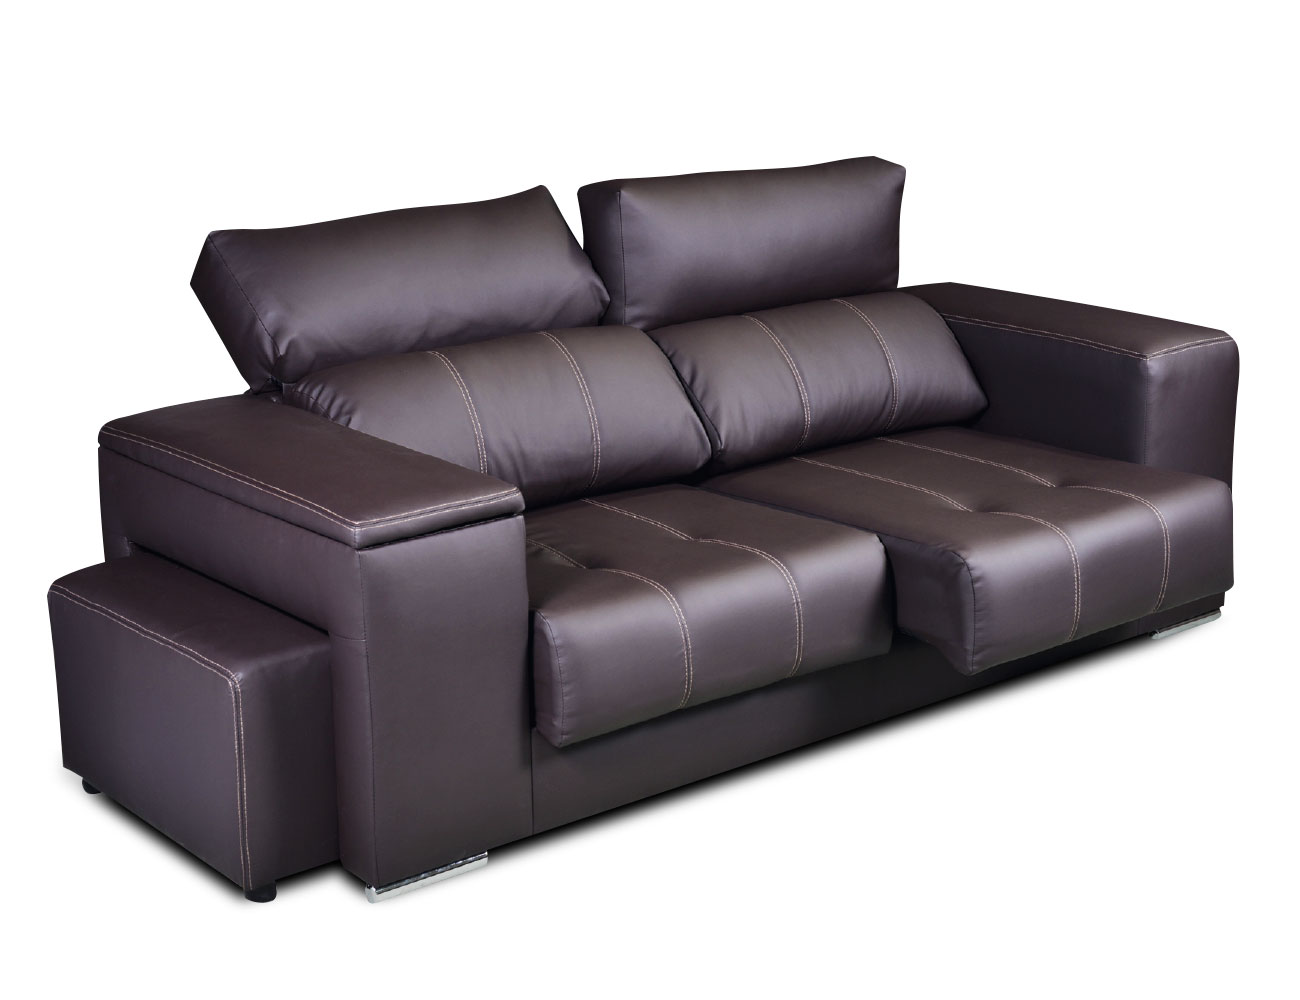 Sofa 3 plazas polipiel arcon taburete